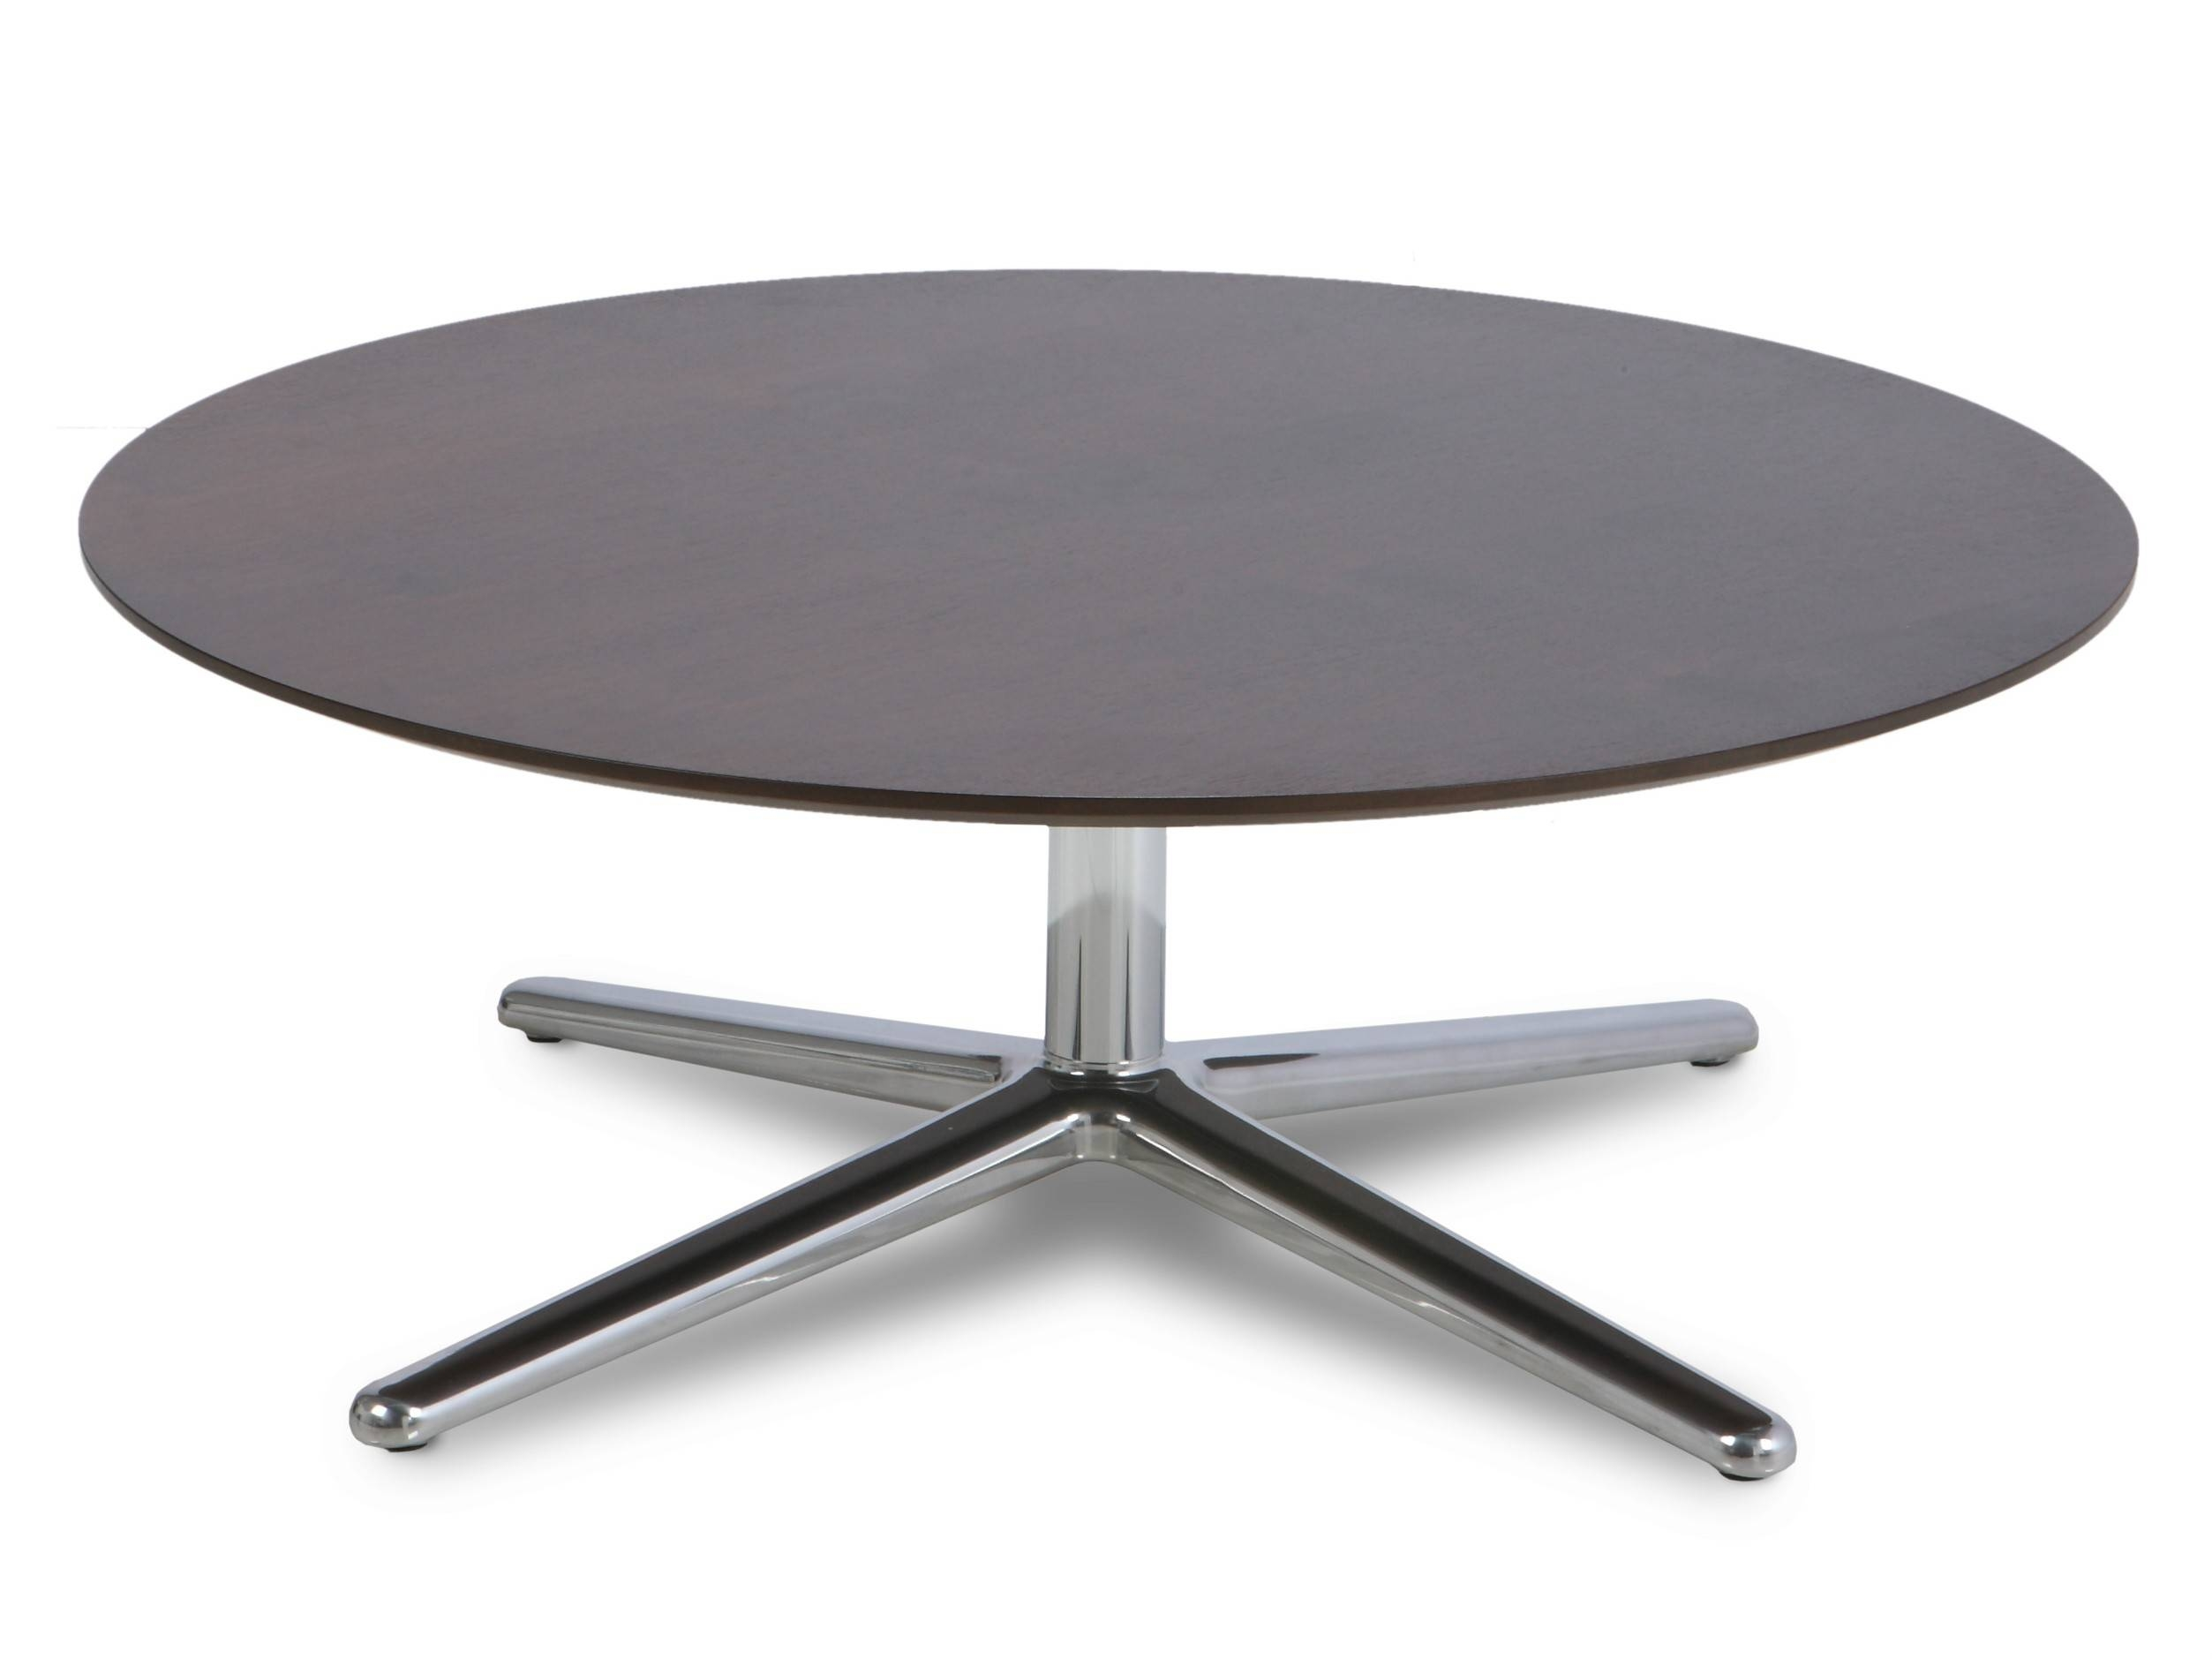 Latest Chrome And Wood Coffee Tables - Round glass coffee table with chrome legs